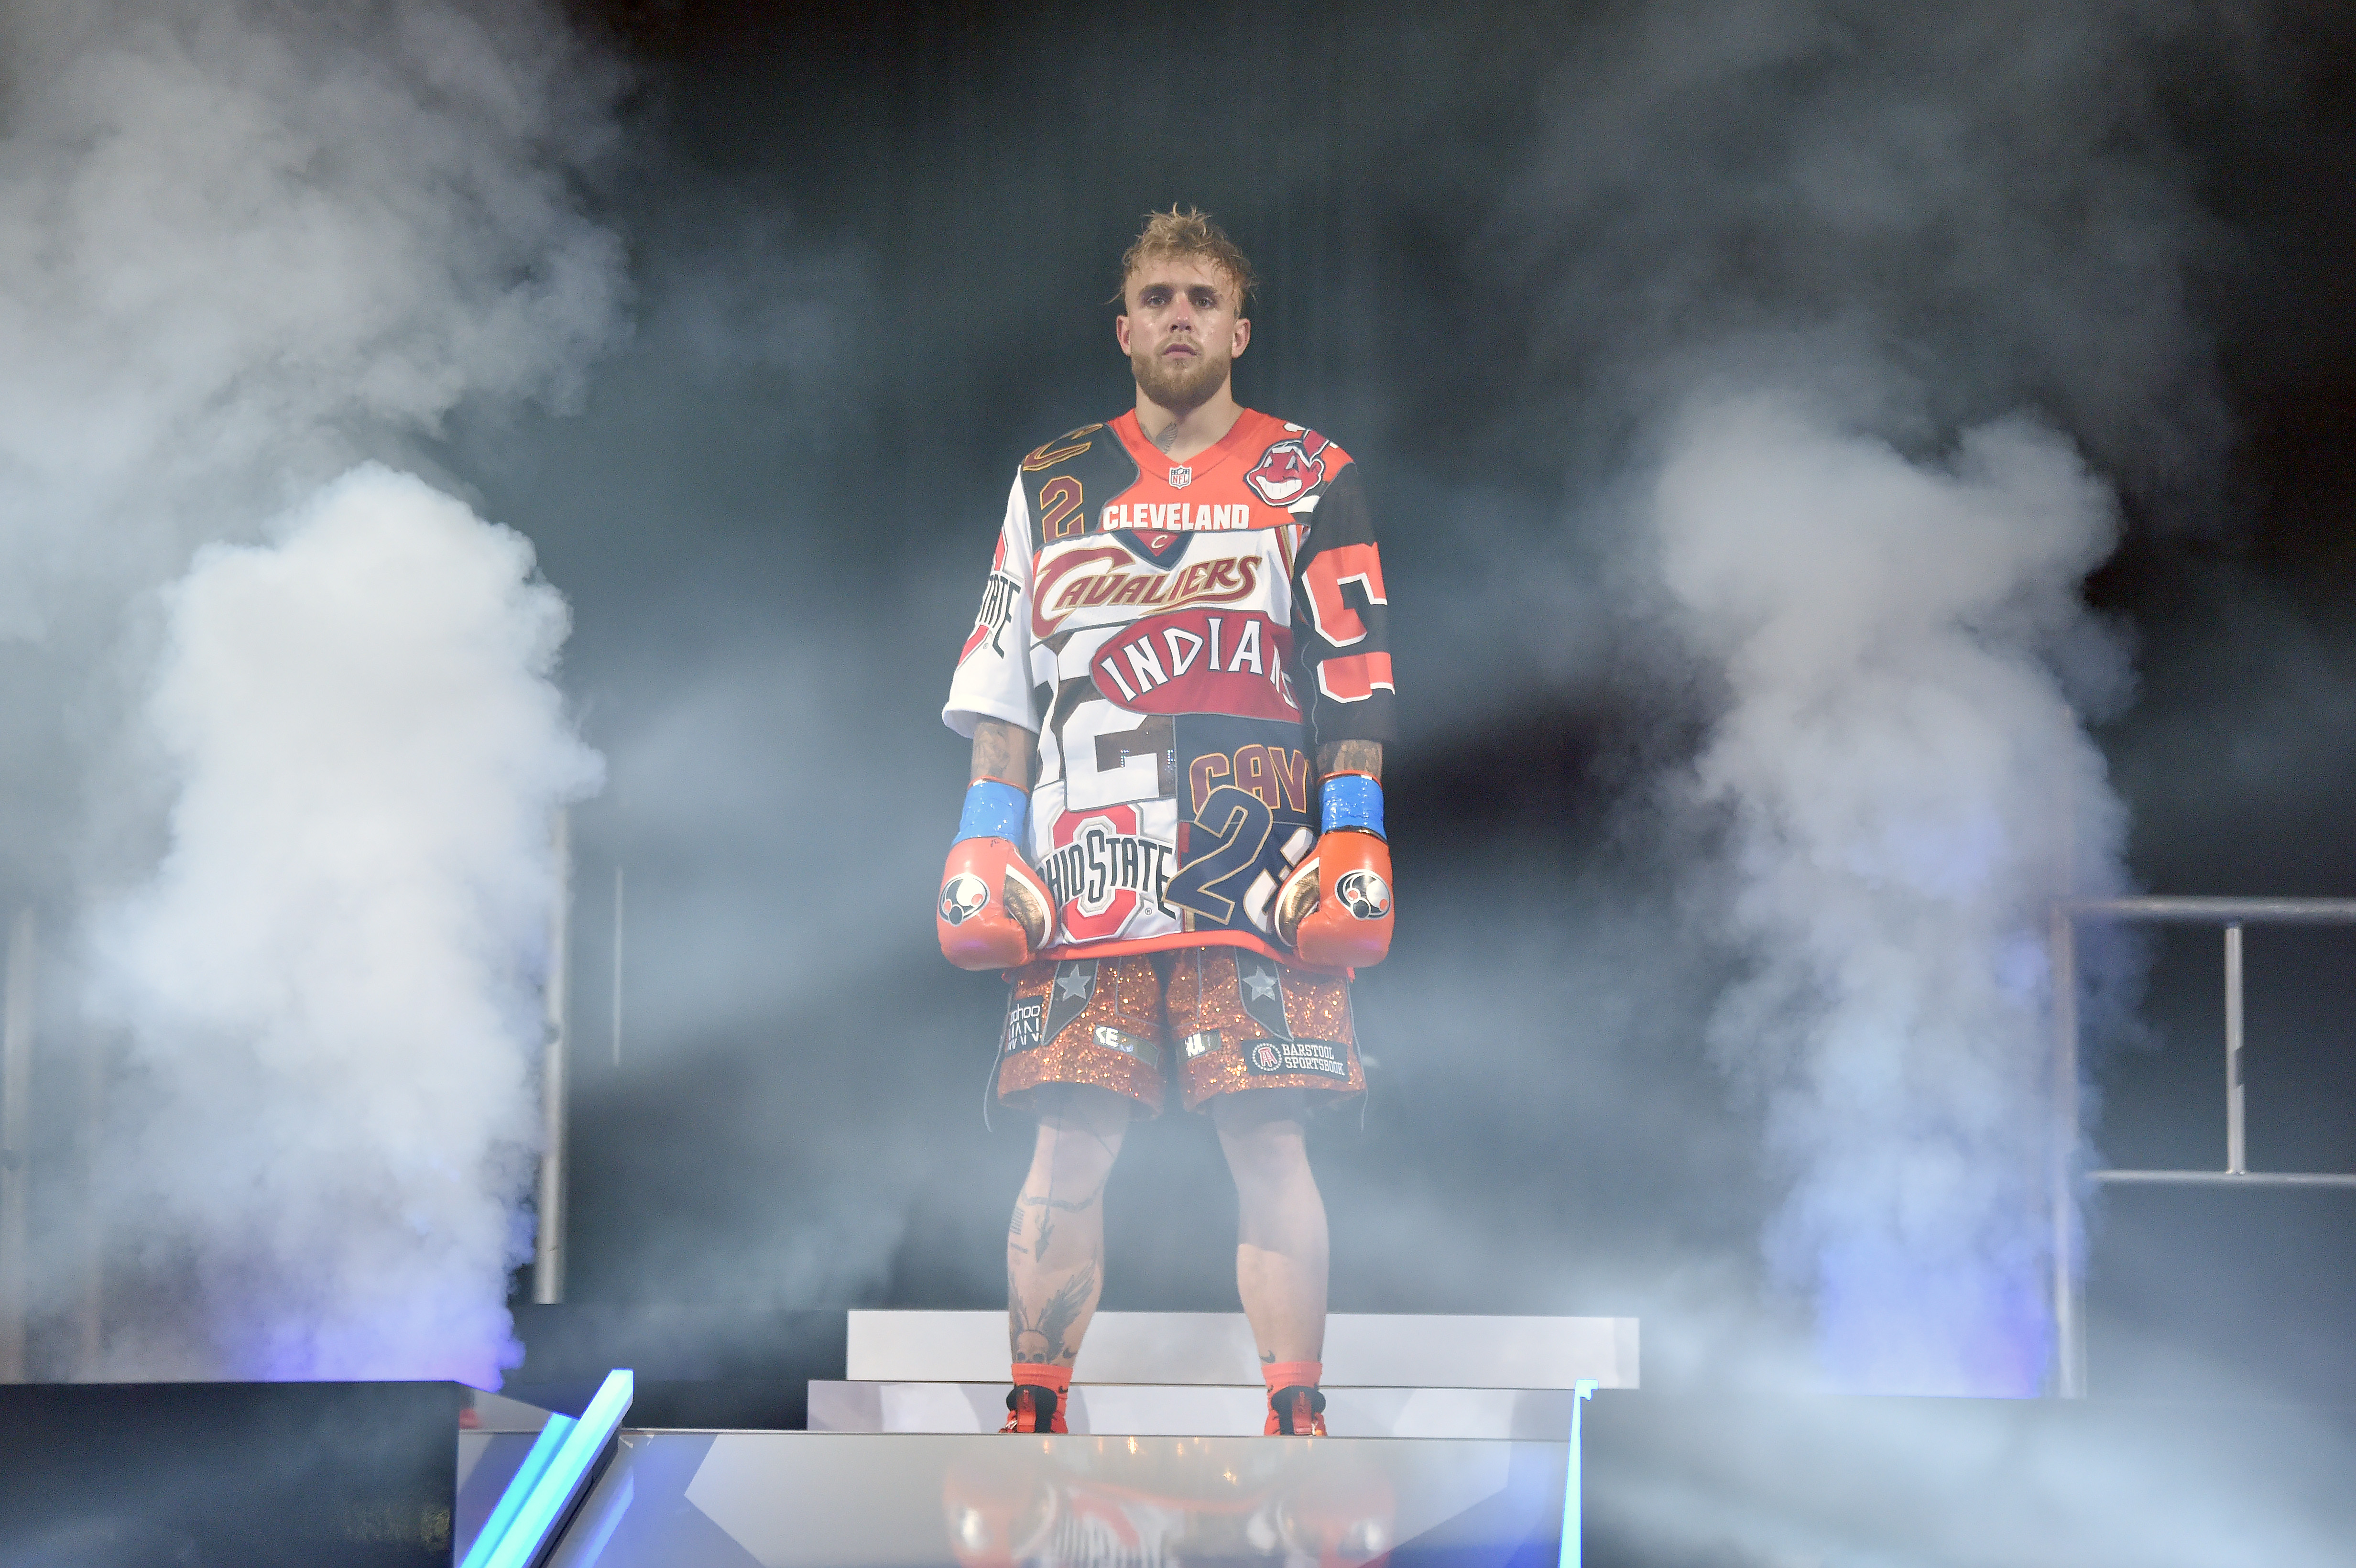 Jake Paul walks towards the ring ahead of his boxing match against Tyron Woodley.